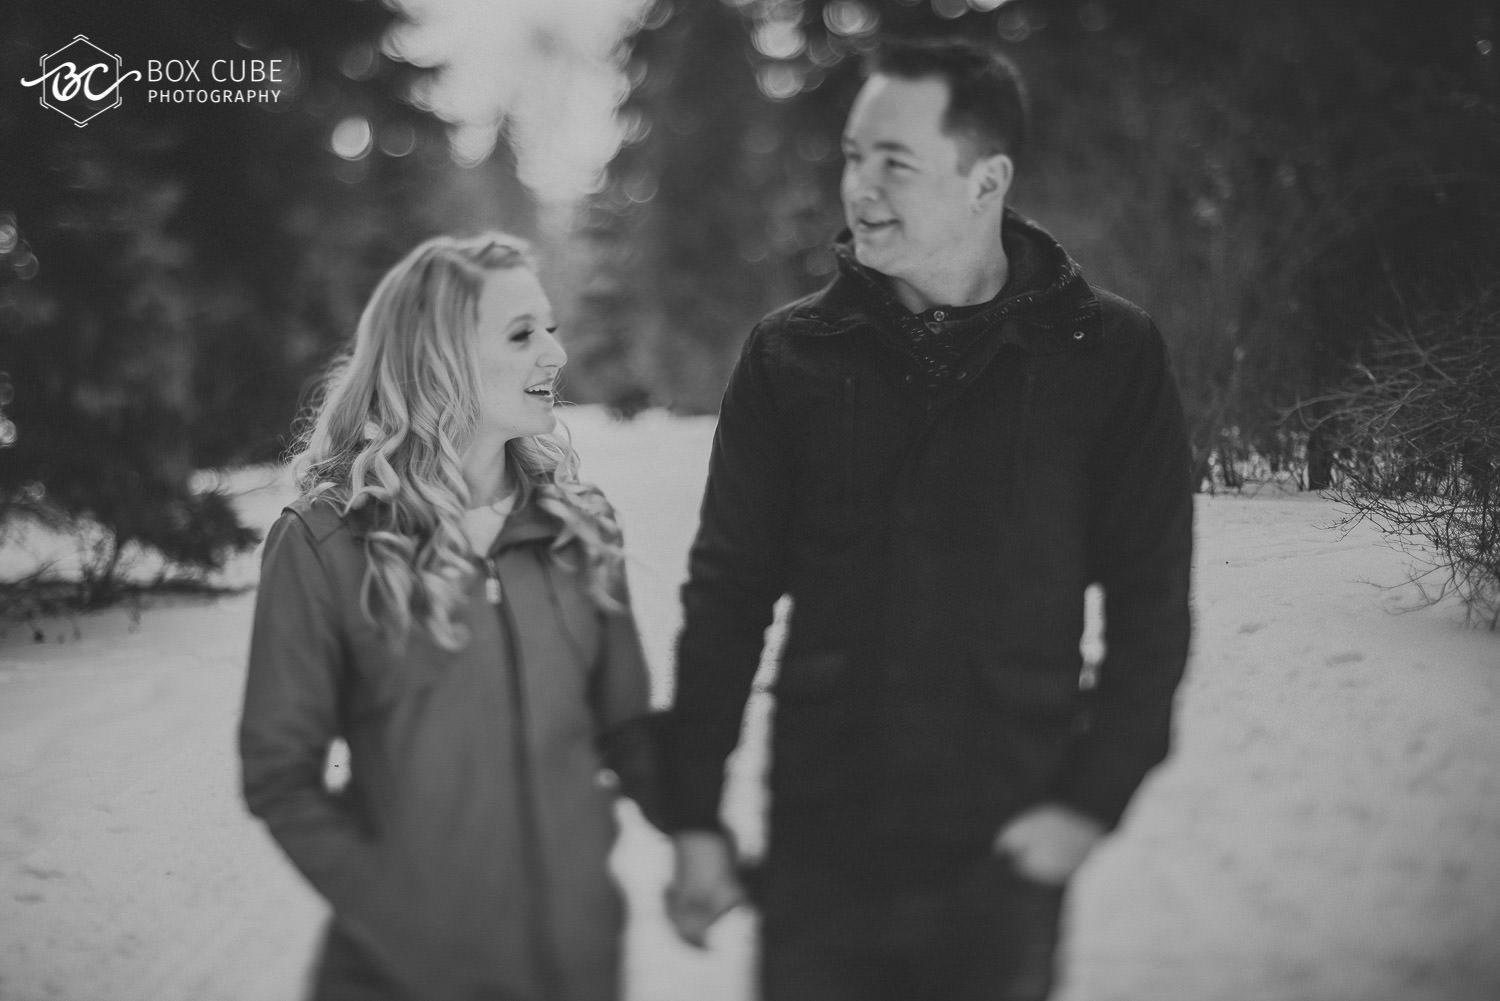 Engagement Photos at William Hawerlak Park by Box Cube Photography with free lensing